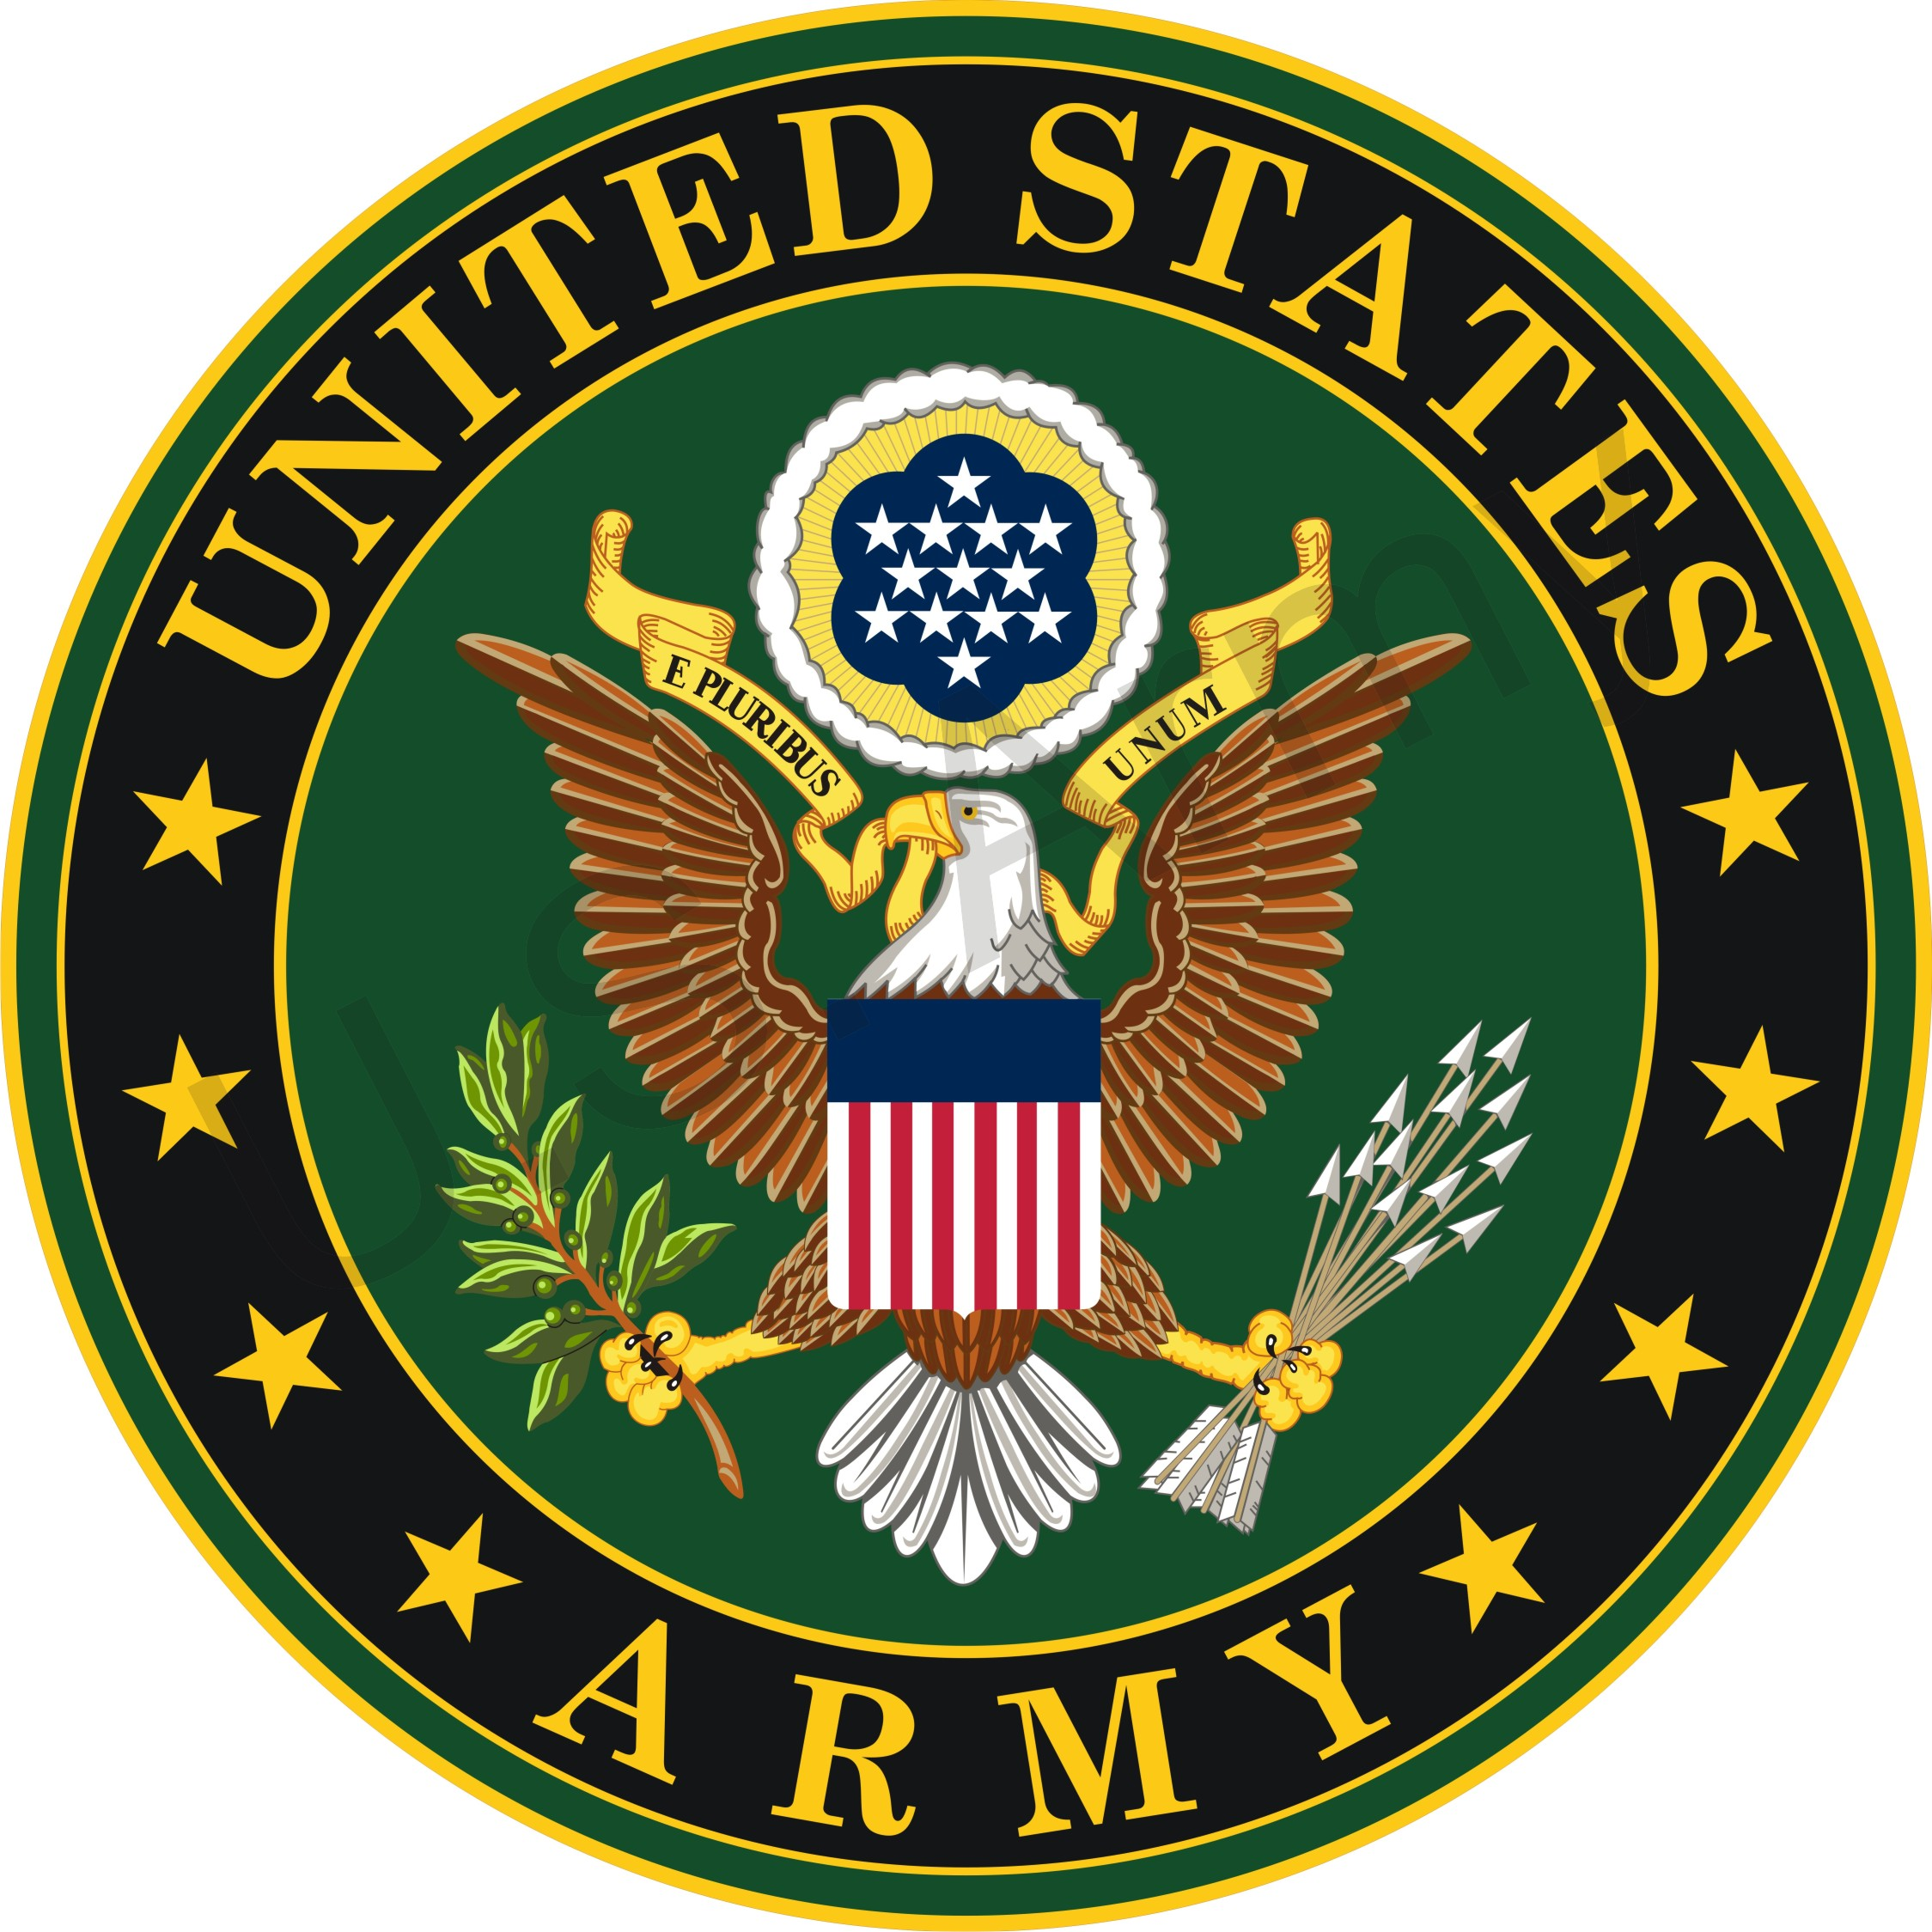 5a98ed41b9e289839c1d1eea87adccf9_army-emblem-clipart-united-states-army-clipart_2249-2249